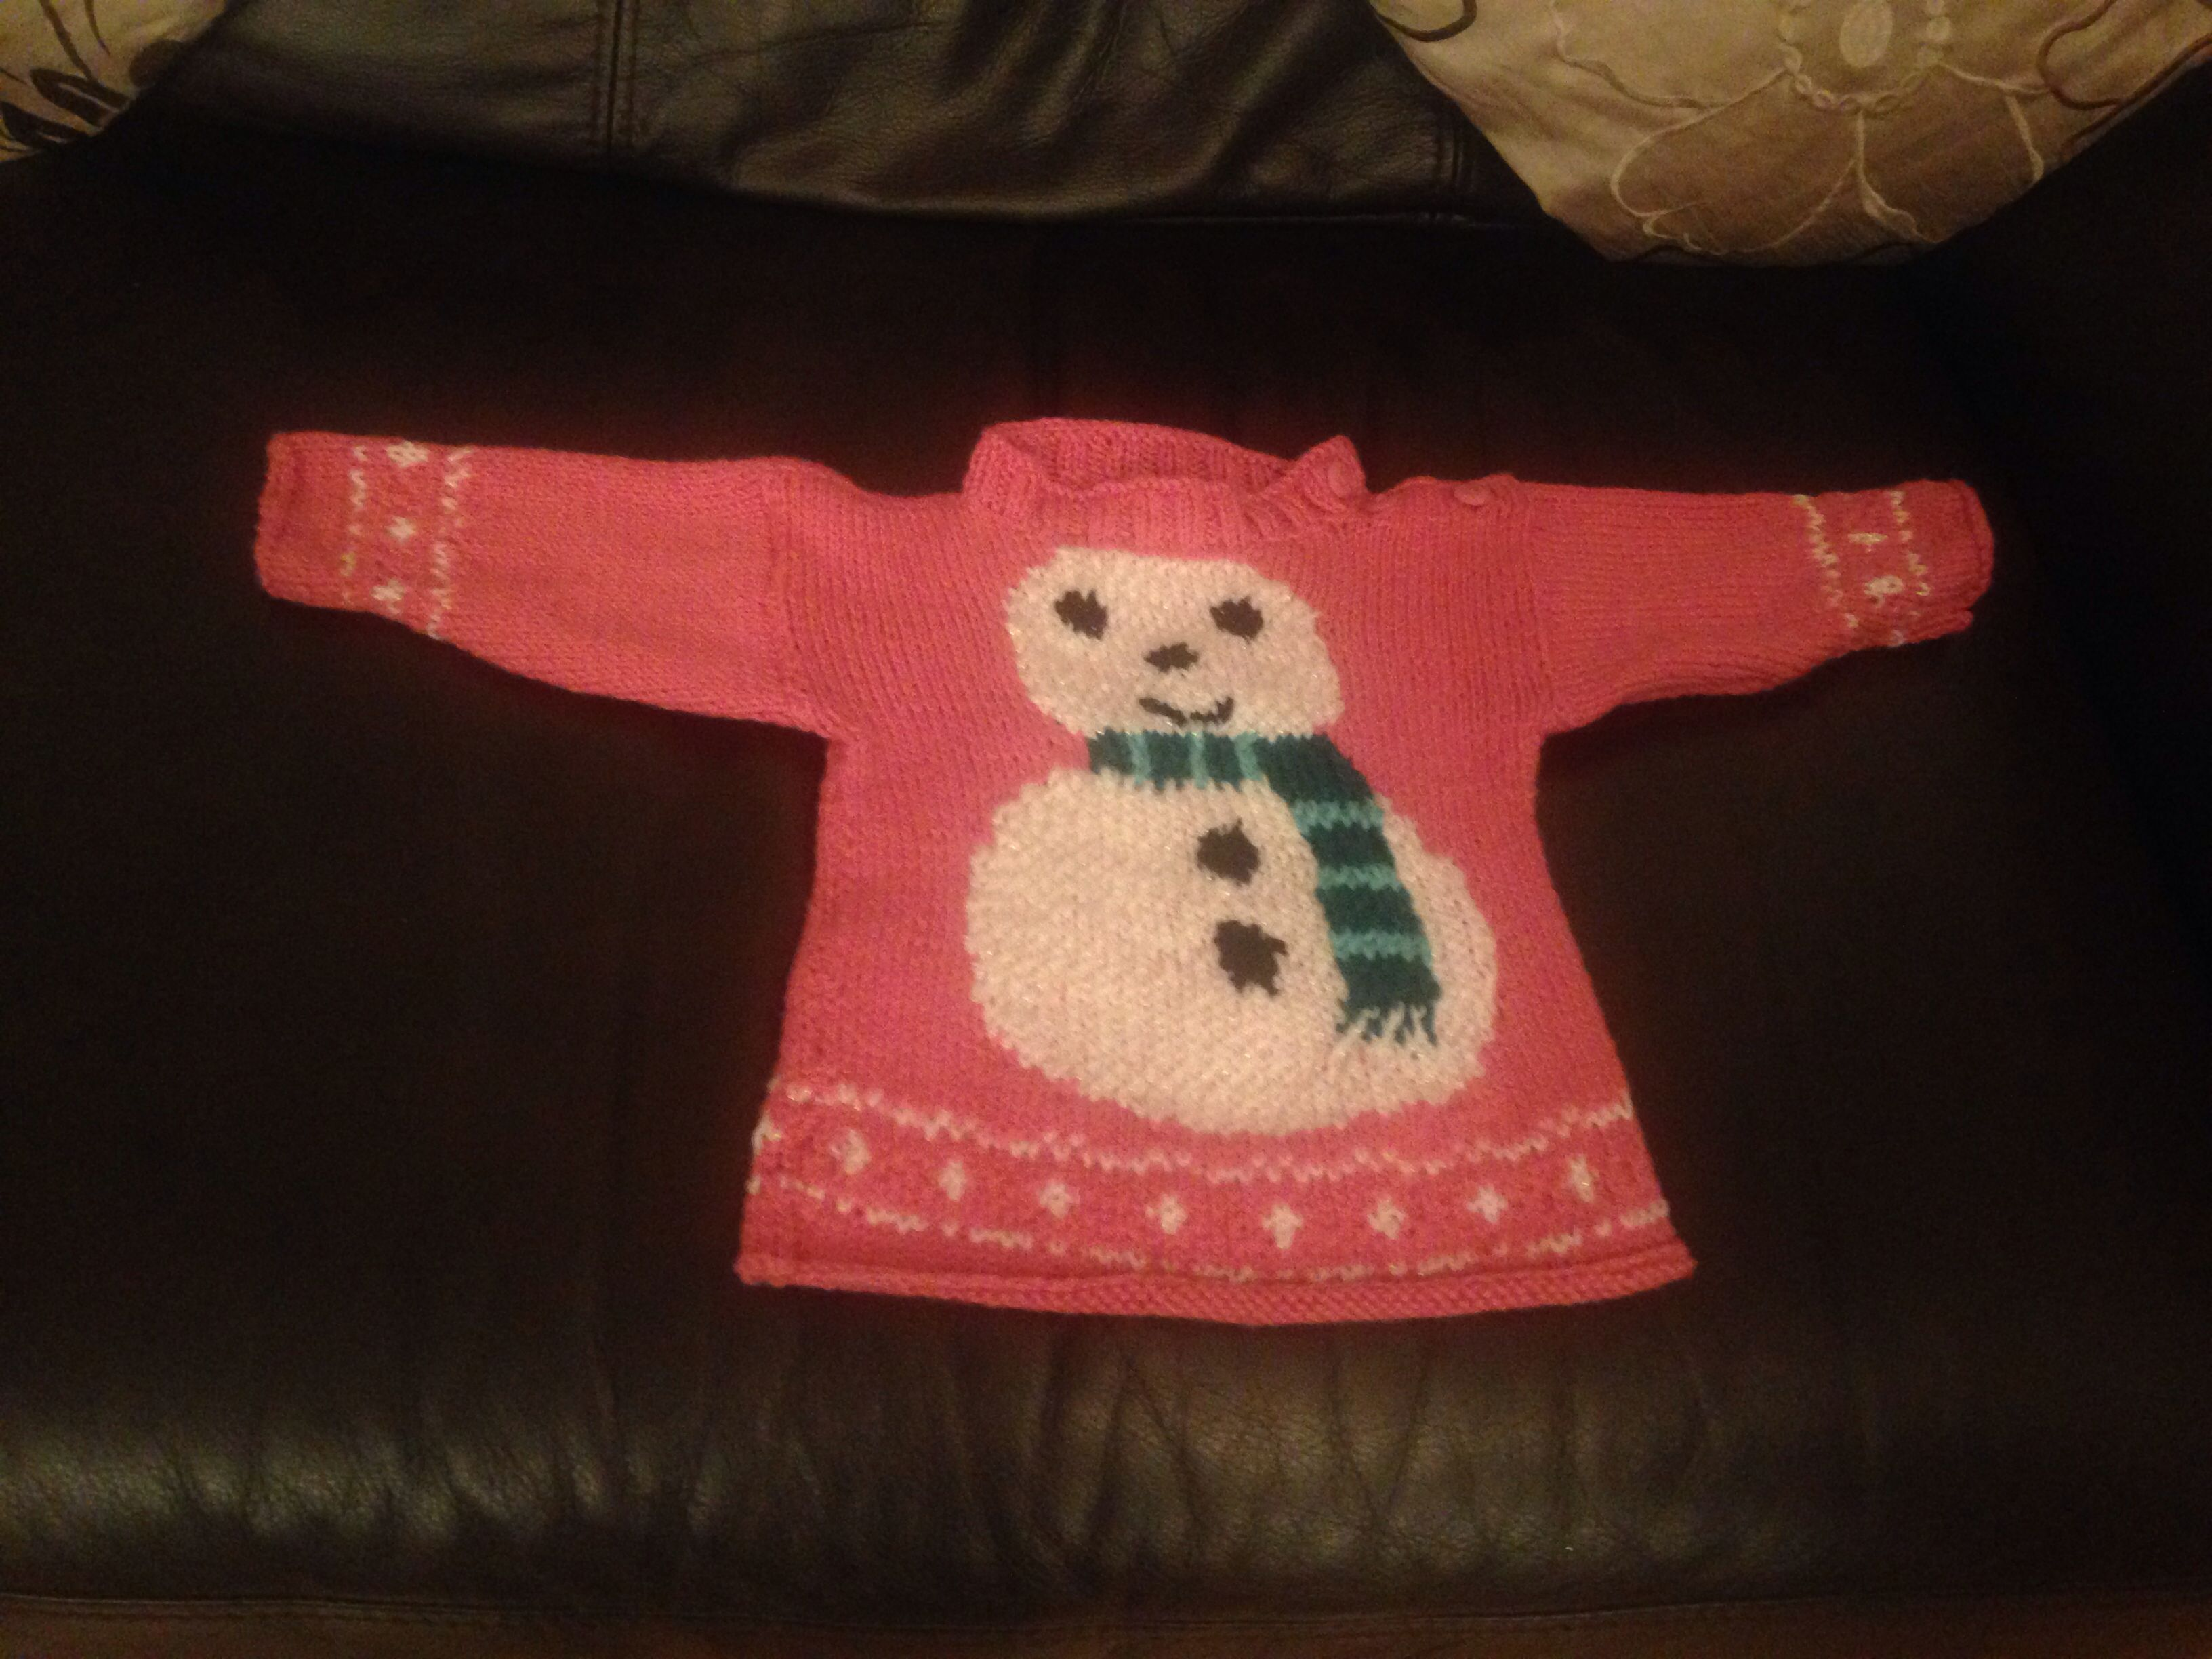 Babys first christmas jumper made by momma yarnage babys first christmas jumper made by momma jumper patternschristmas knitting bankloansurffo Image collections